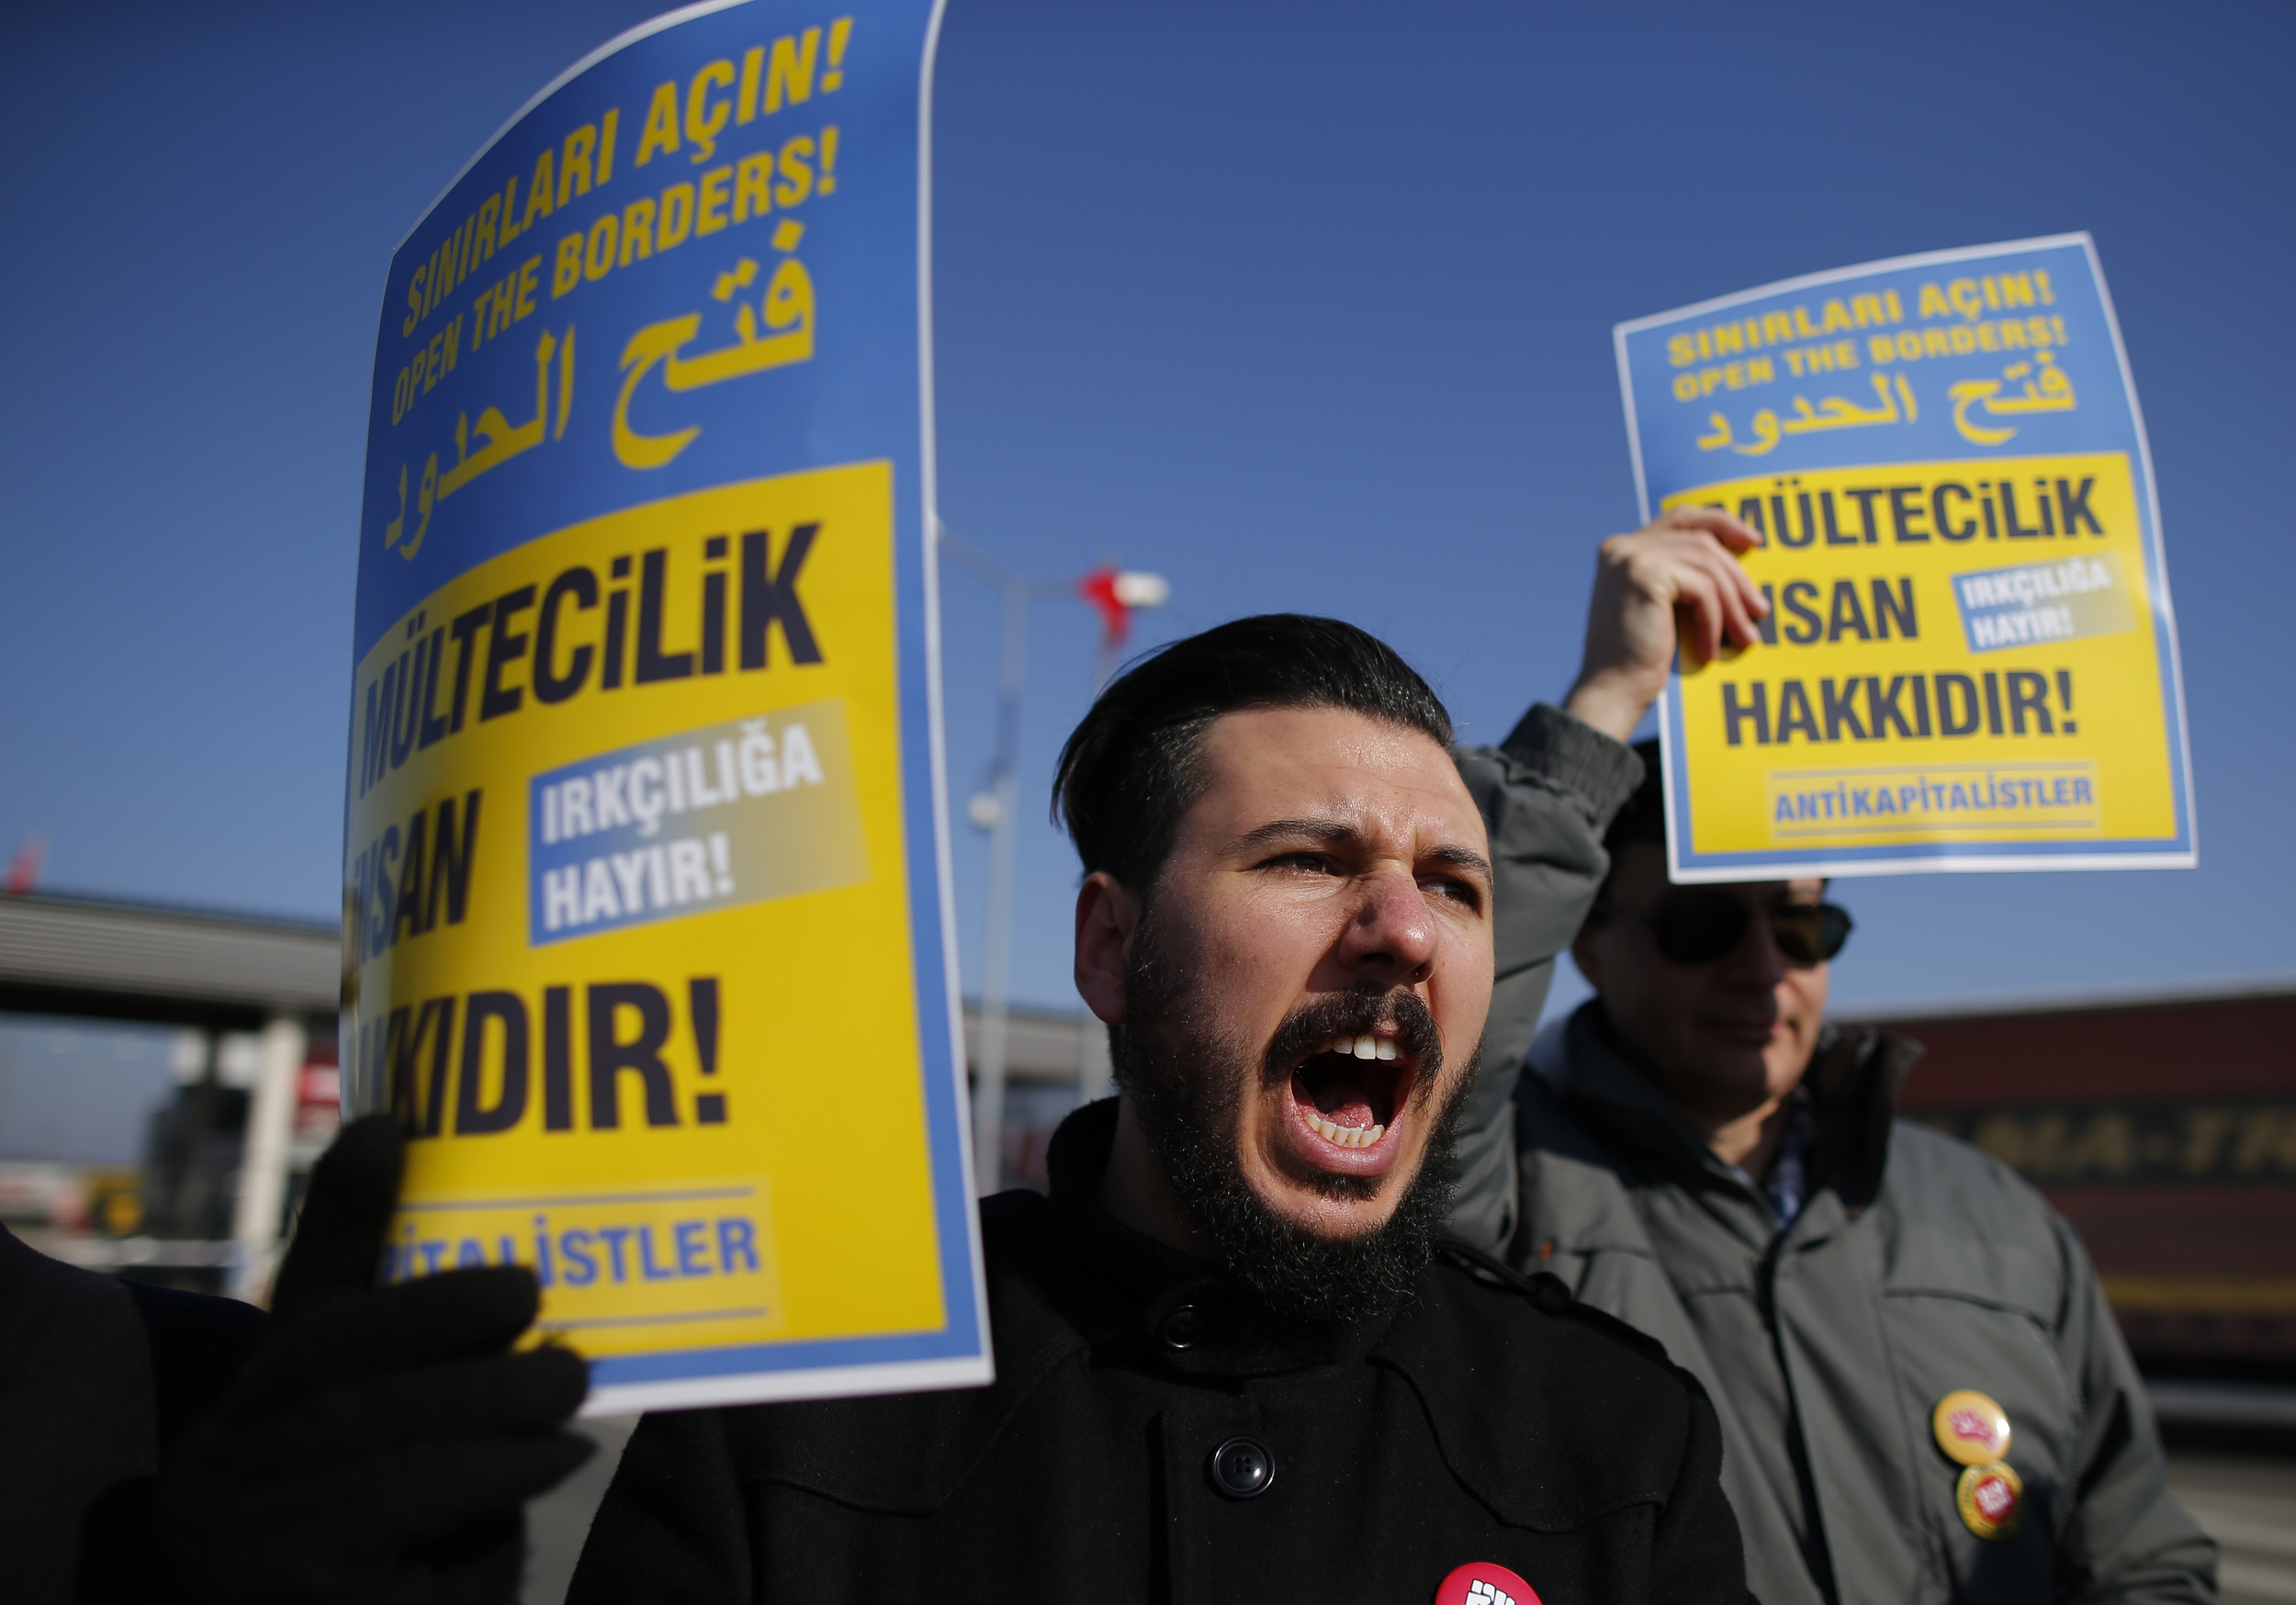 A group of Turkish protesters chant slogans as they hold a demonstration along with Greek protesters in front of Ipsala border gate with Greece, in Turkey's northwestern province of Edirne, Sunday, Jan. 24, 2016.(Emrah Gurel/AP)